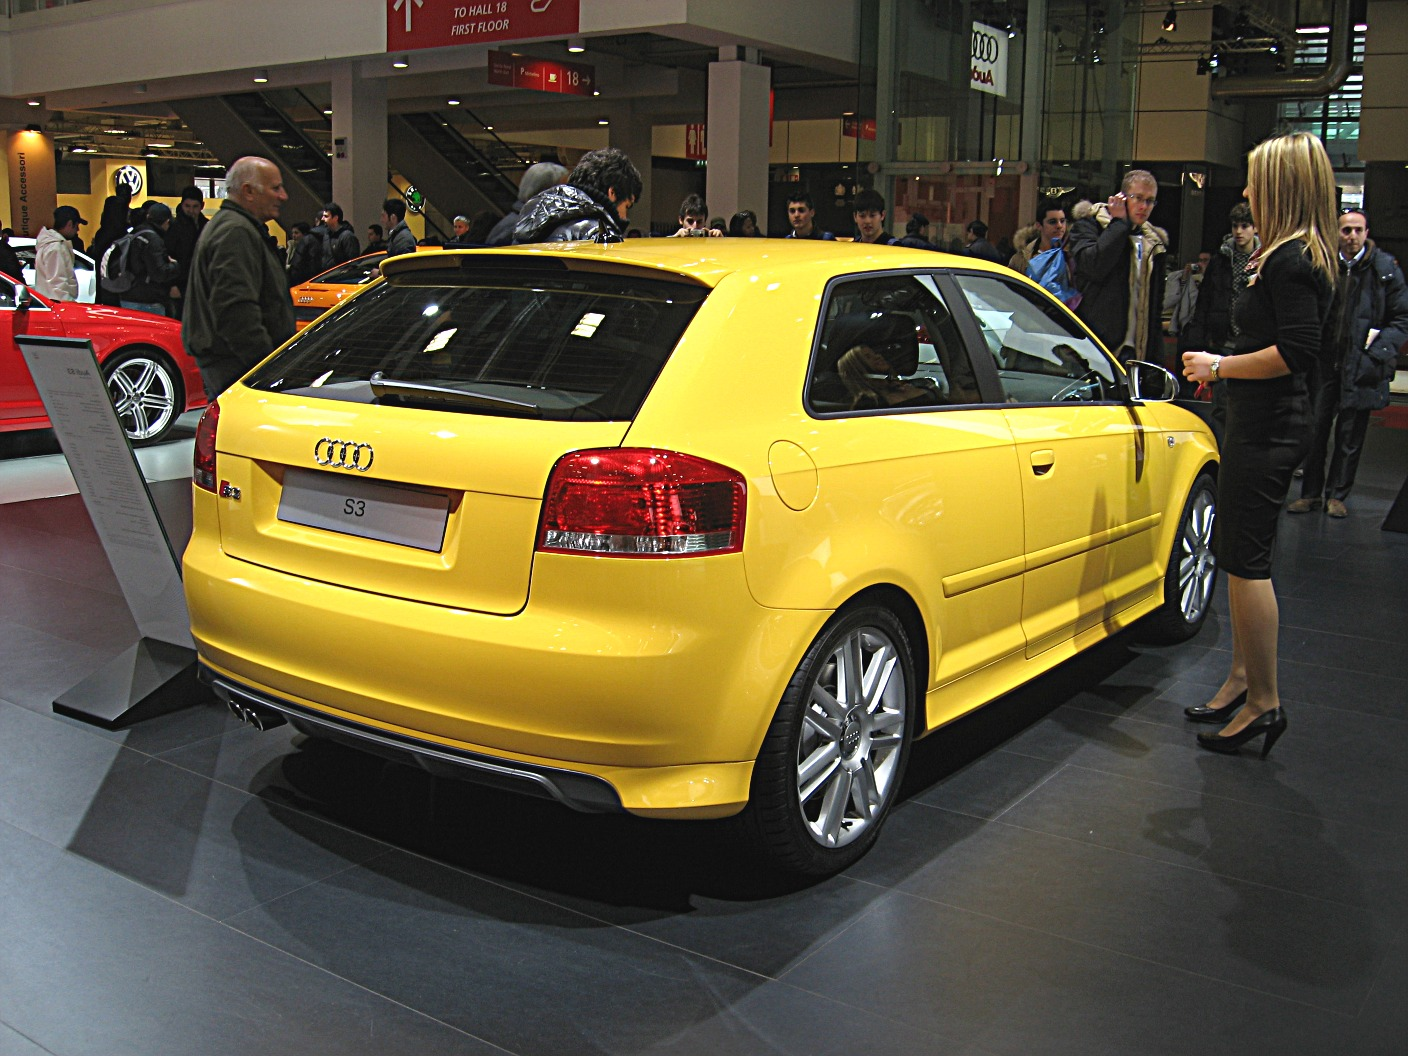 file audi s3 rear view jpg wikimedia commons. Black Bedroom Furniture Sets. Home Design Ideas